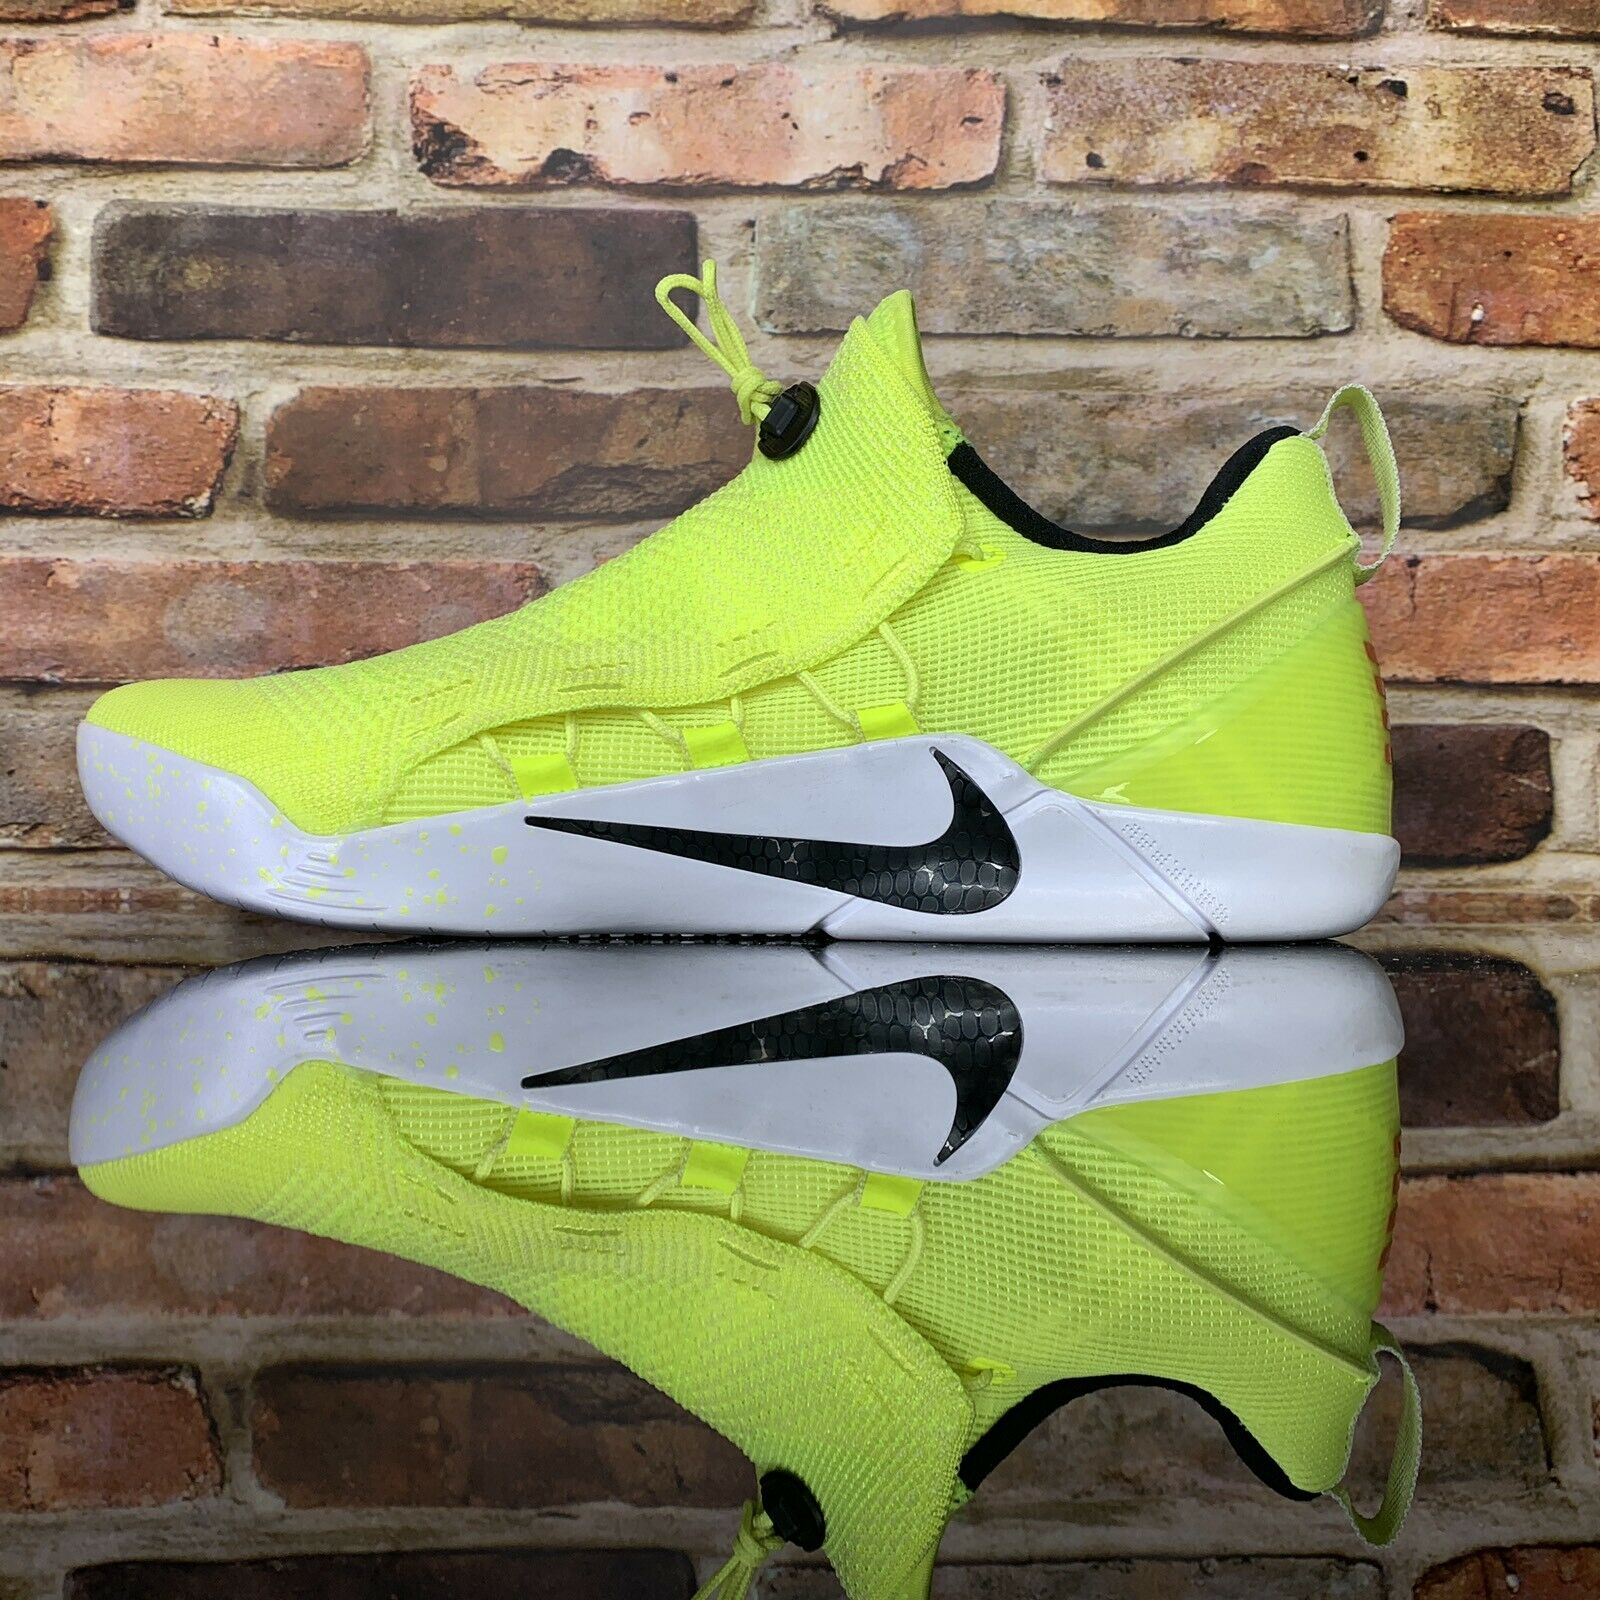 Nike Kobe Bryant Ad Nxt Hmd Basketball Hommes Taille 10 Volt Blanches Noires